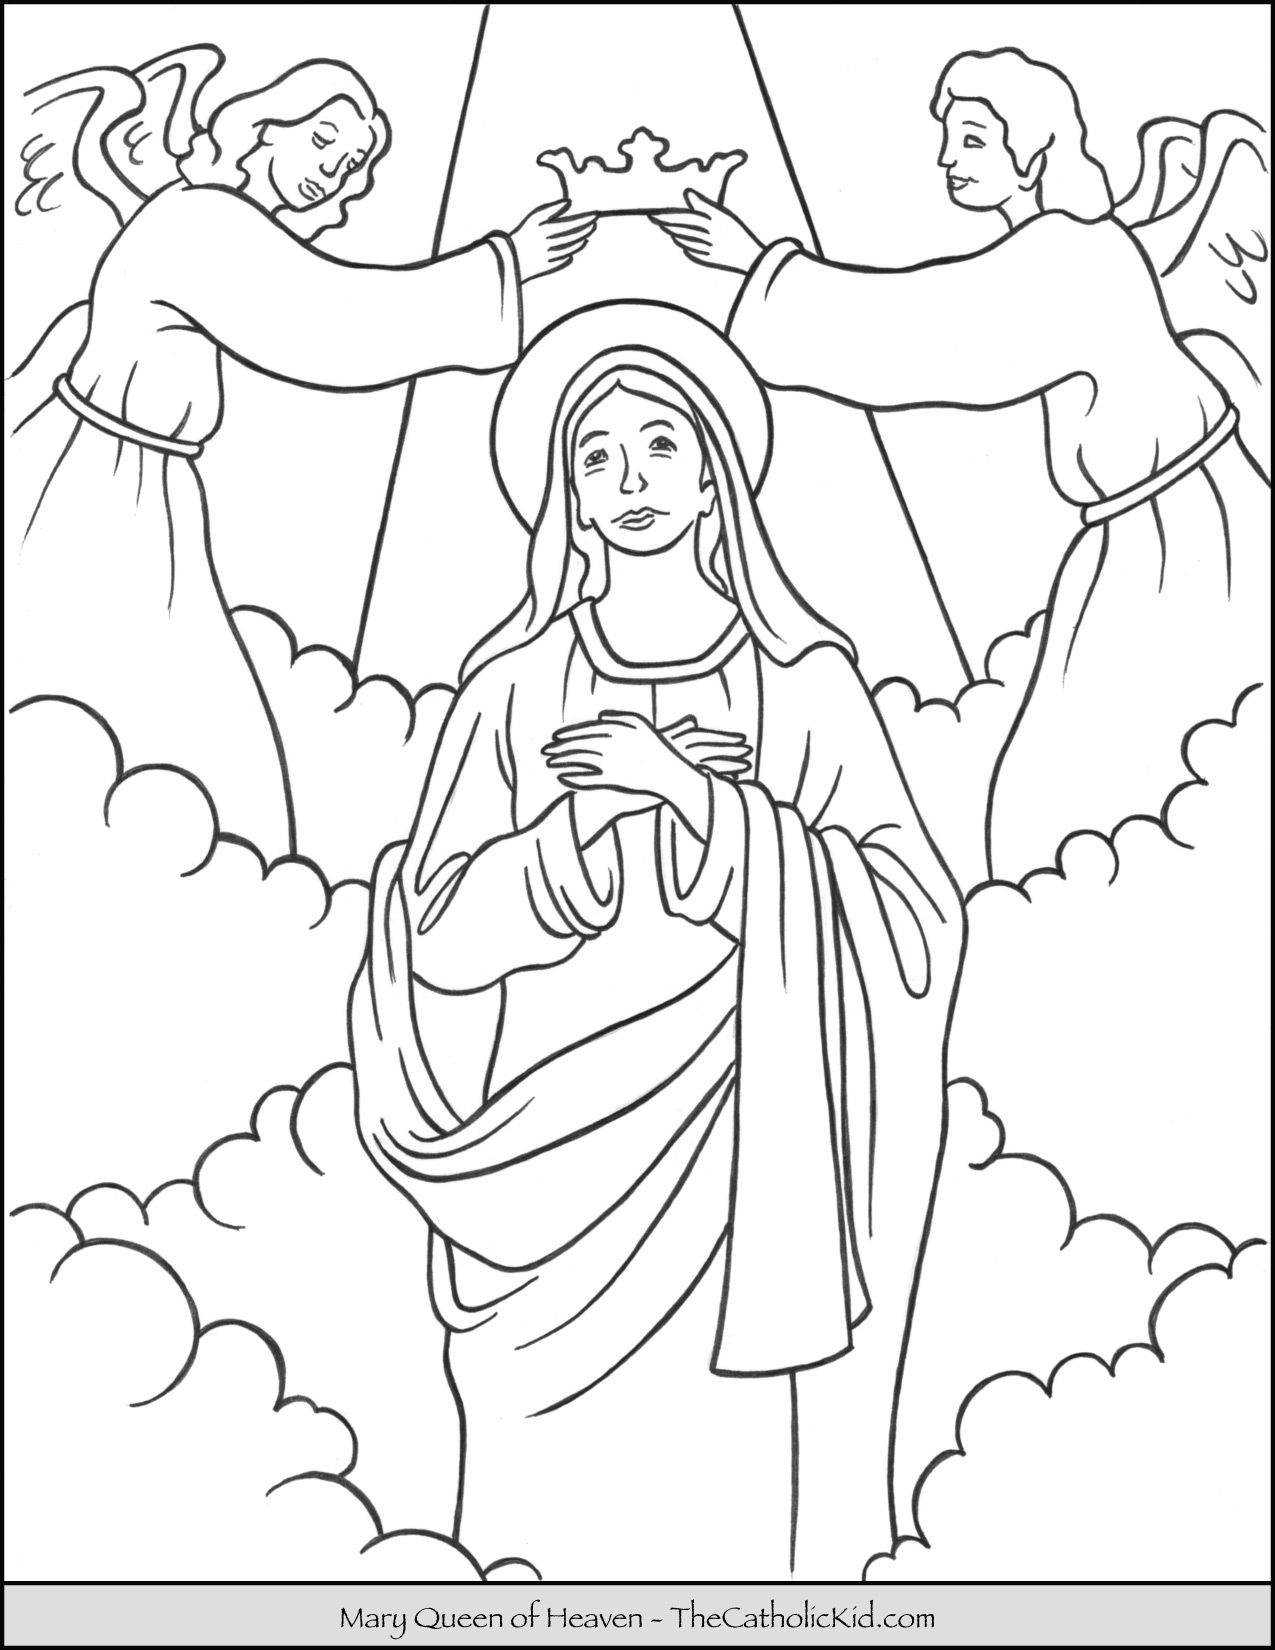 Mary Queen Of Heaven Coloring Page Thecatholickid Com Coloring